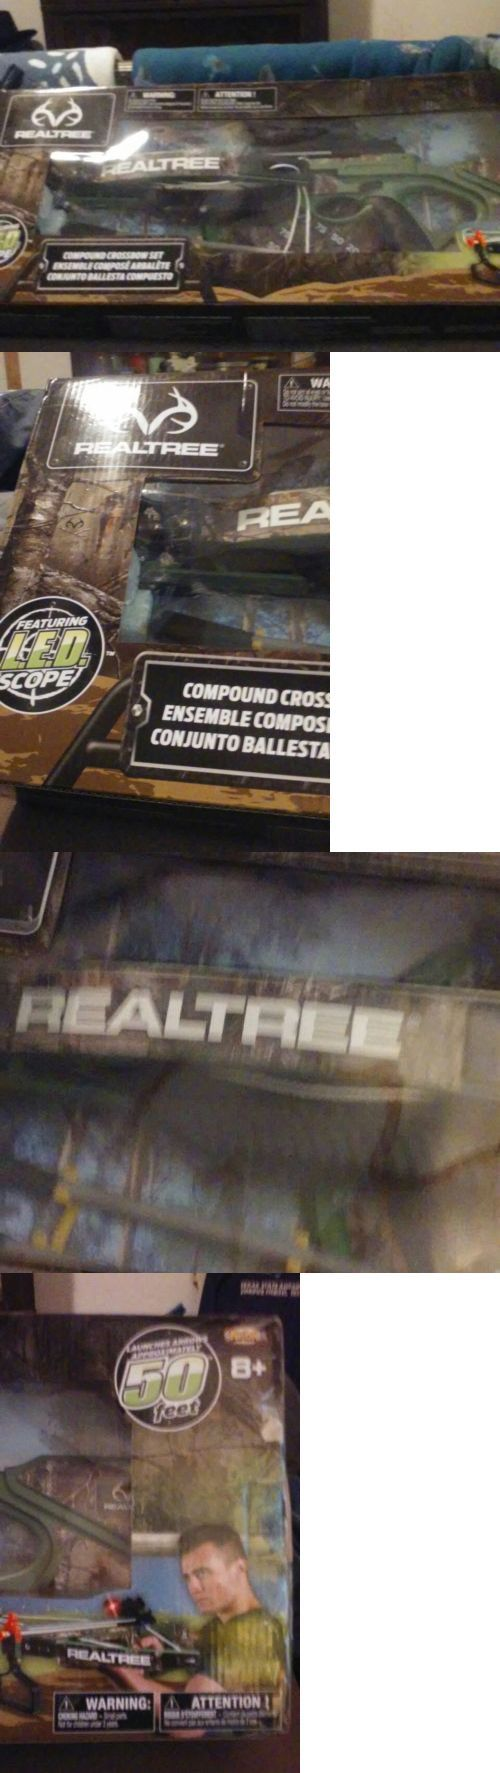 Bowhunting 159037: Realtree #25023 Compound Crossbow Set New Sealed -> BUY IT NOW ONLY: $32.95 on eBay!